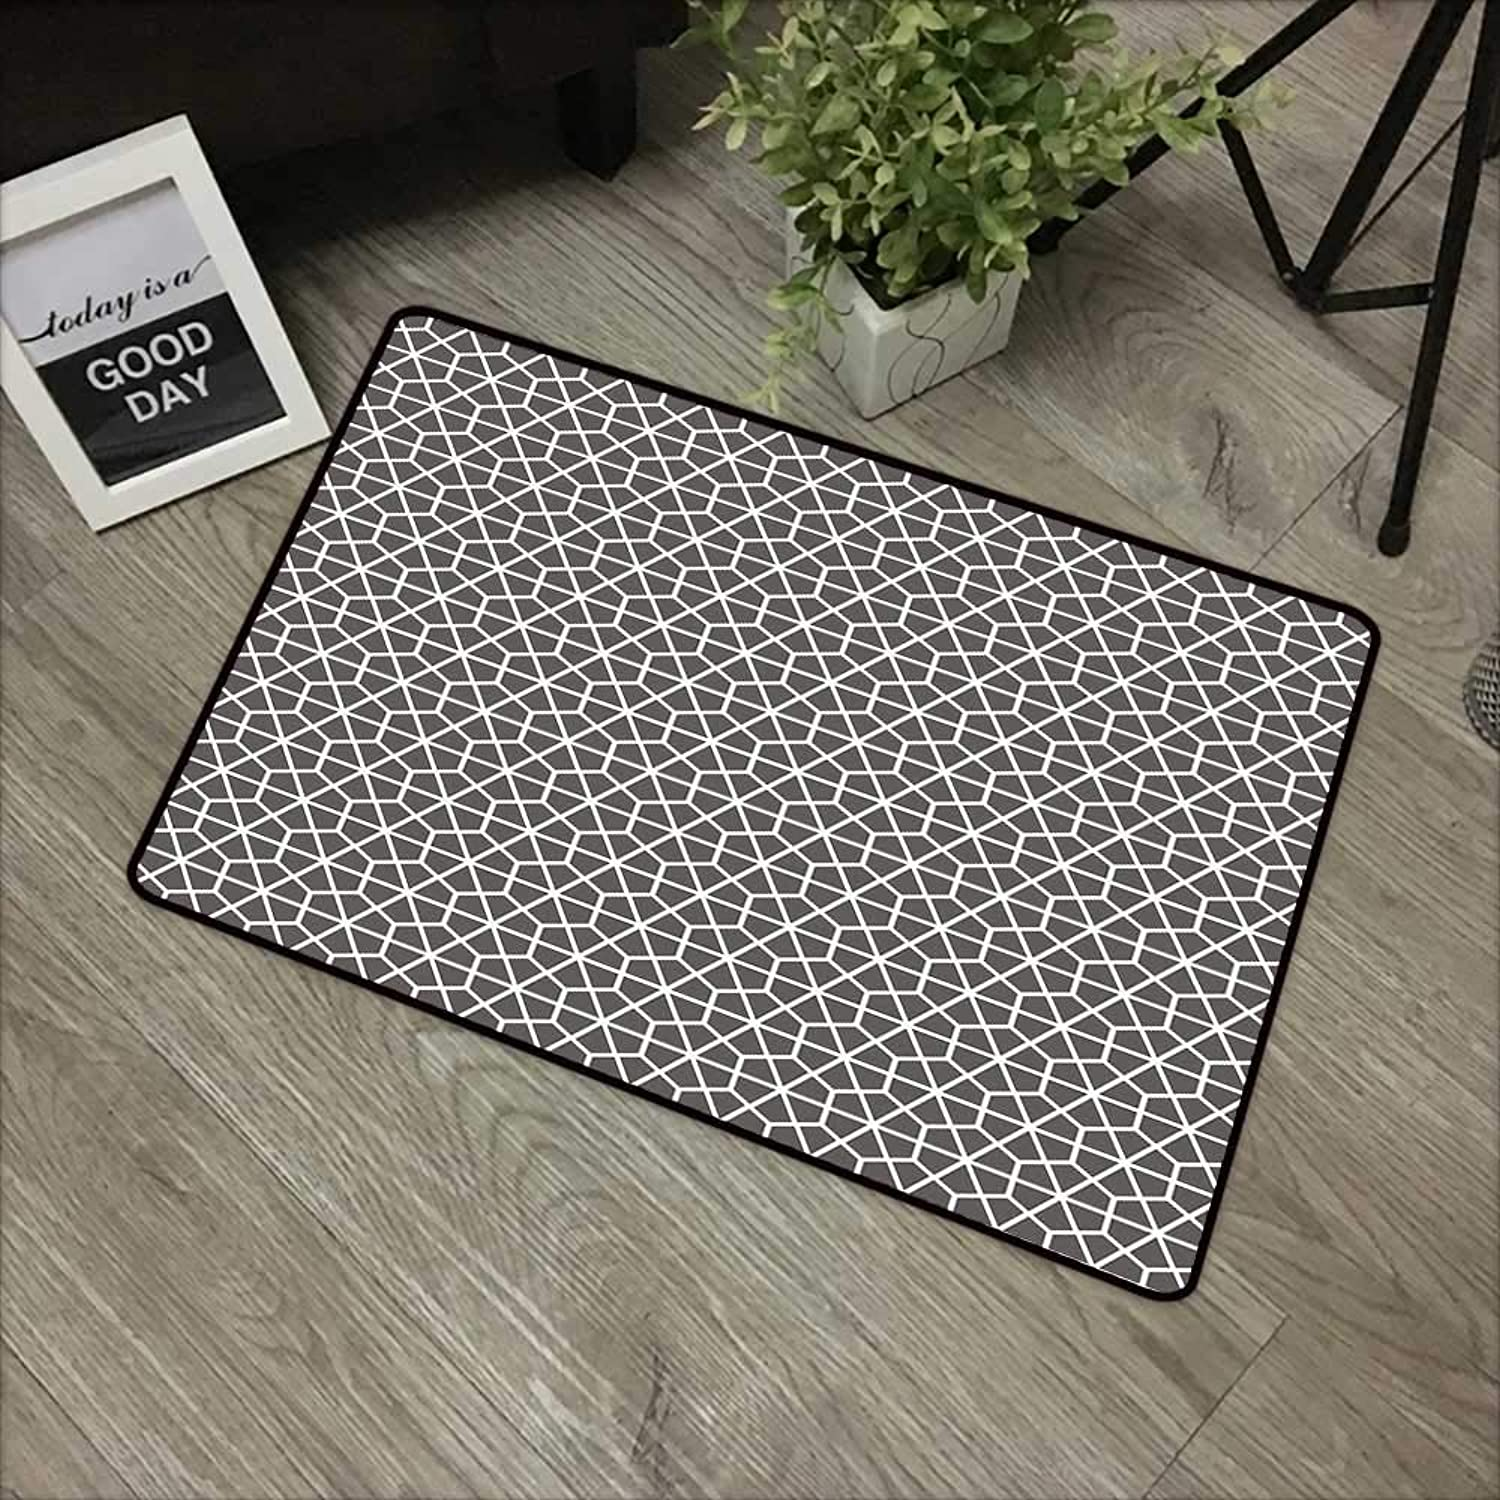 Bathroom Anti-Slip Door mat W35 x L59 INCH Geometric,Hexagonal Comb Pattern with Crossed Lines Eastern Cultures Monochrome,Charcoal Grey White Non-Slip Door Mat Carpet